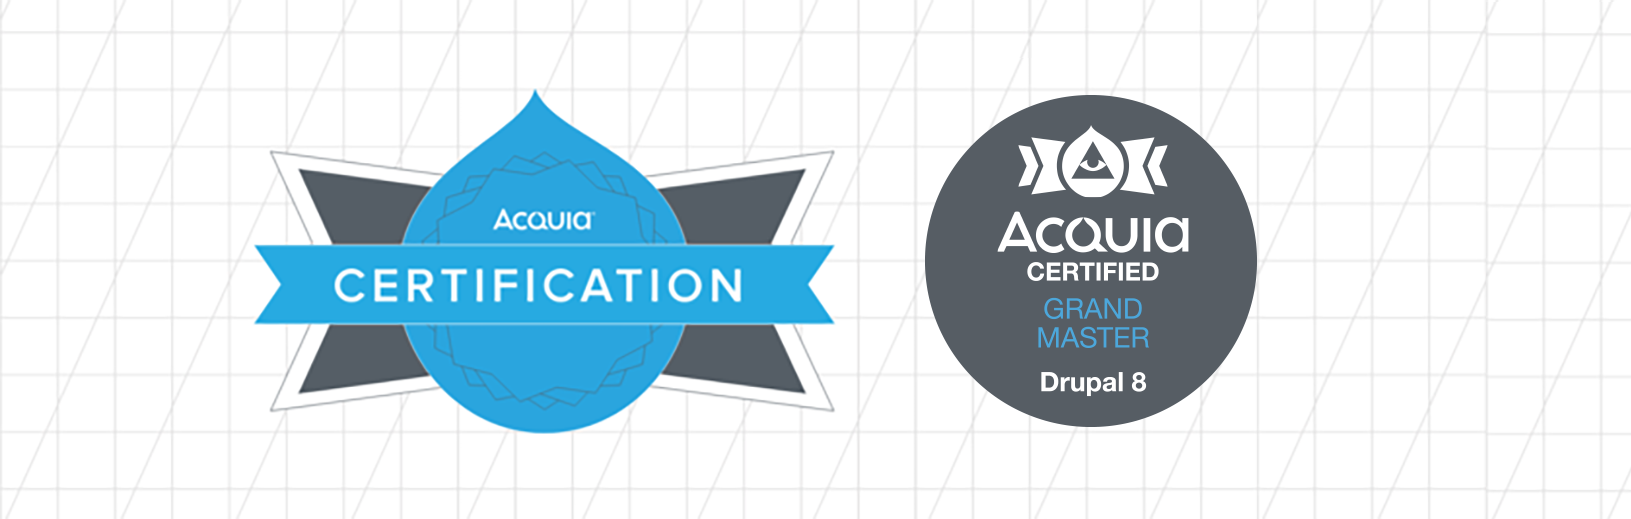 Acquia Certification / アクイア認定プログラム